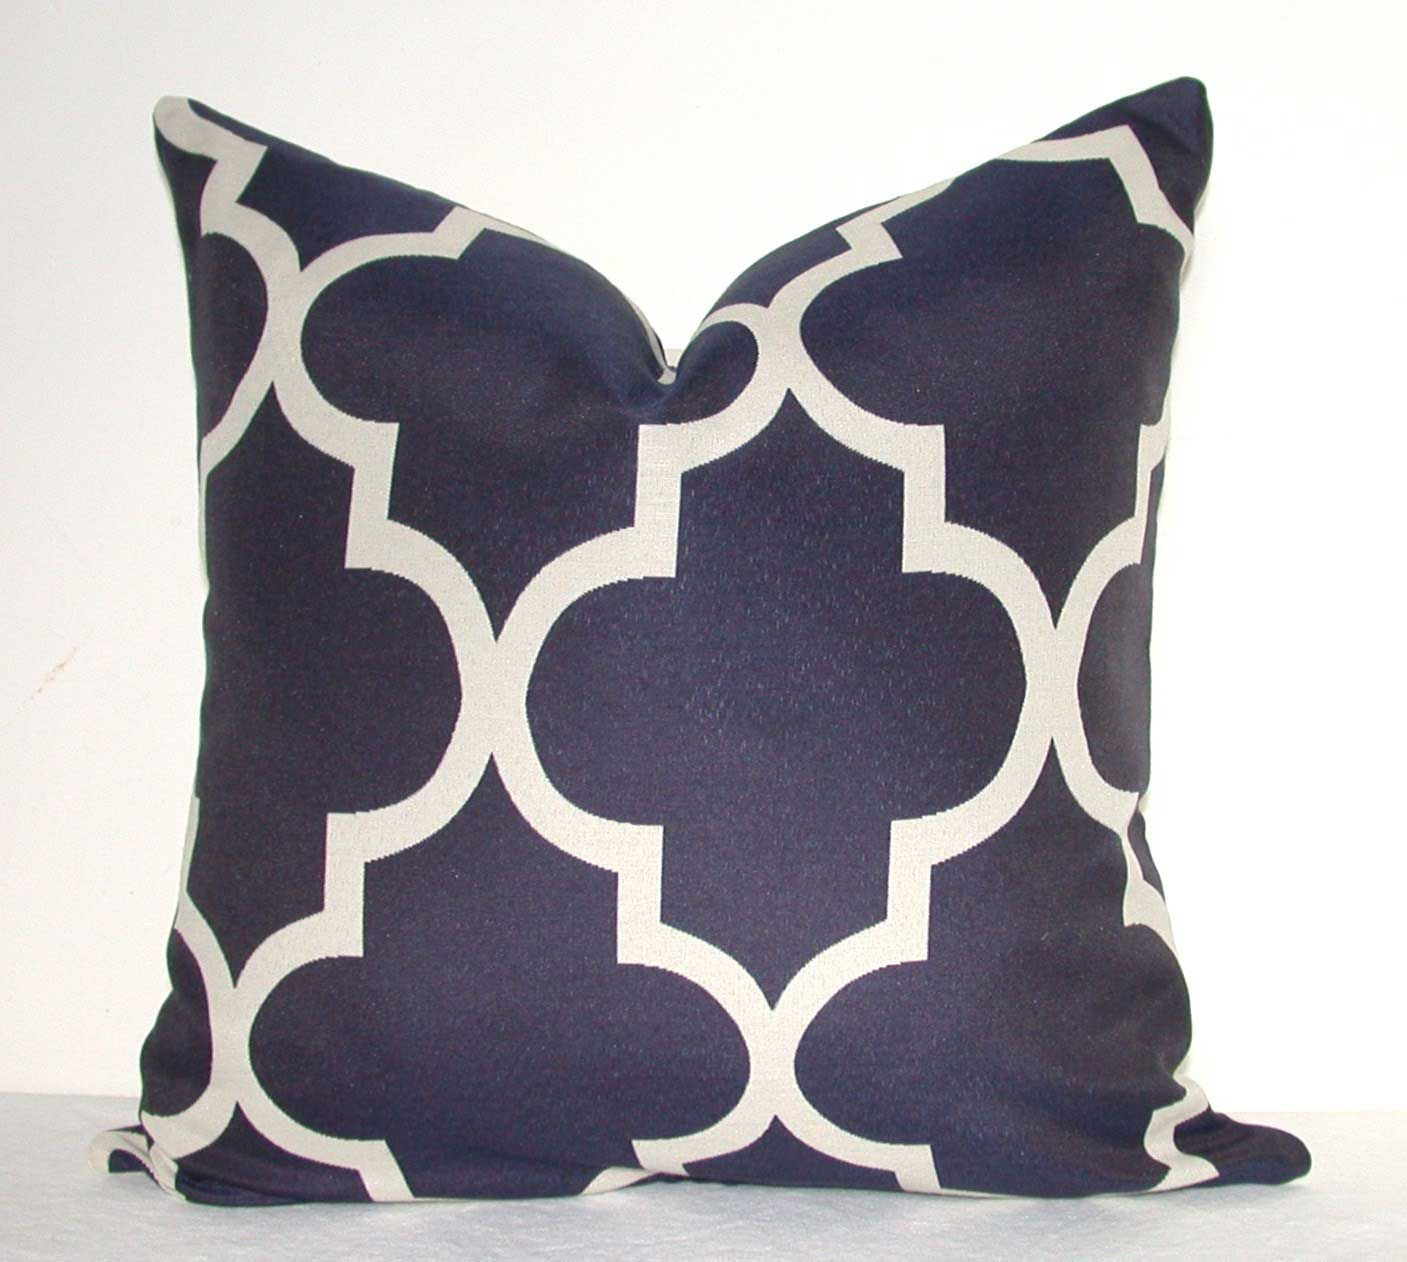 Accent pillows | Accent Pillows For Sofa | Feel The Home | Pillows ...